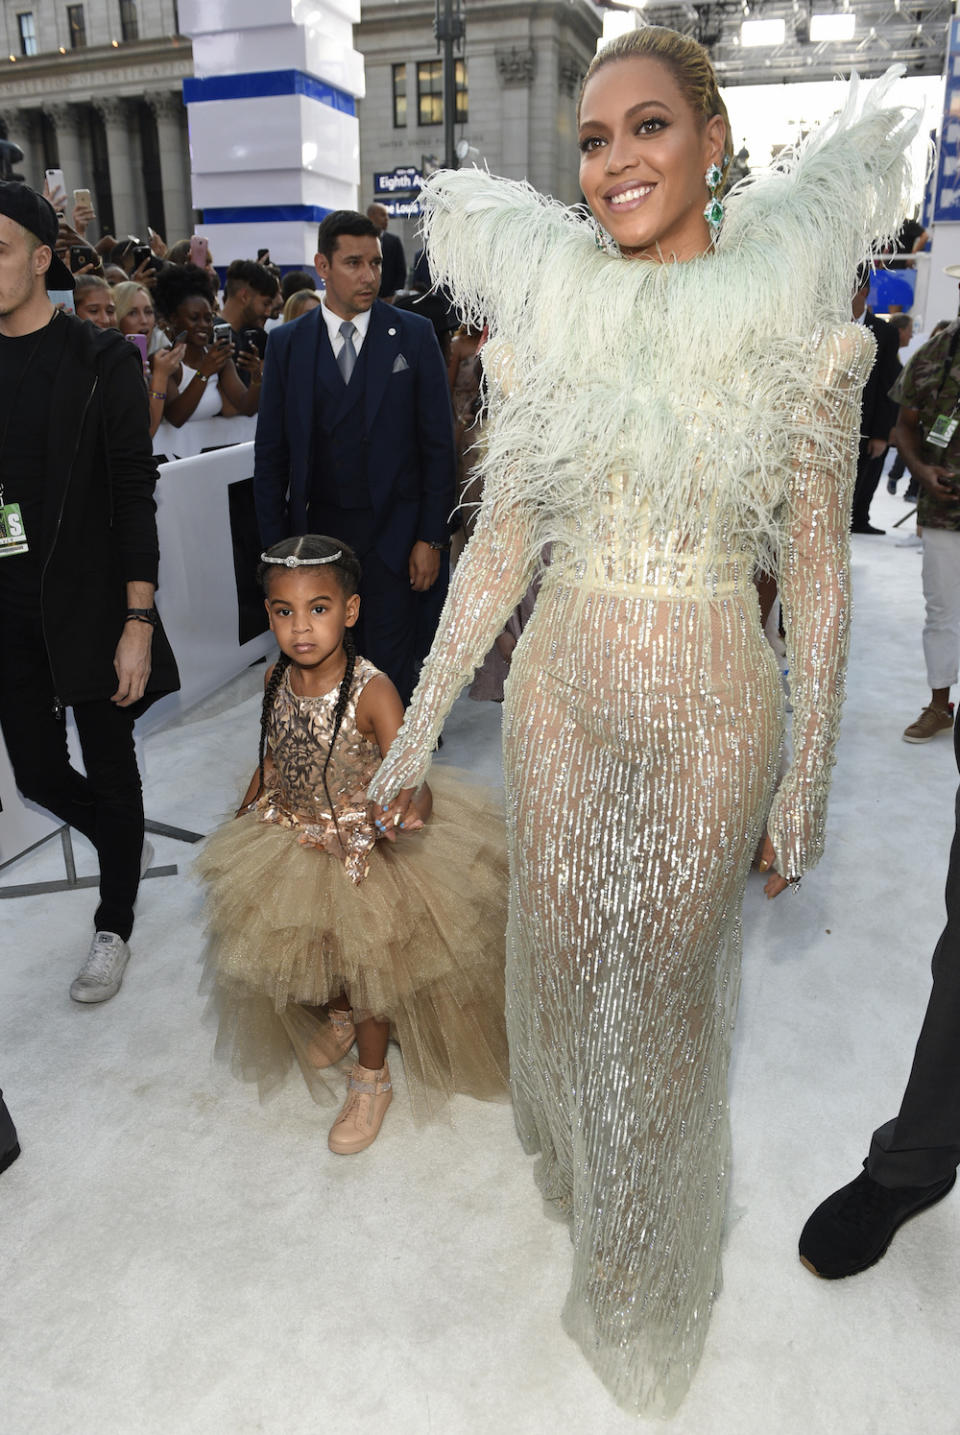 Blue Ivy and Beyonce on the white carpet at the VMAs.